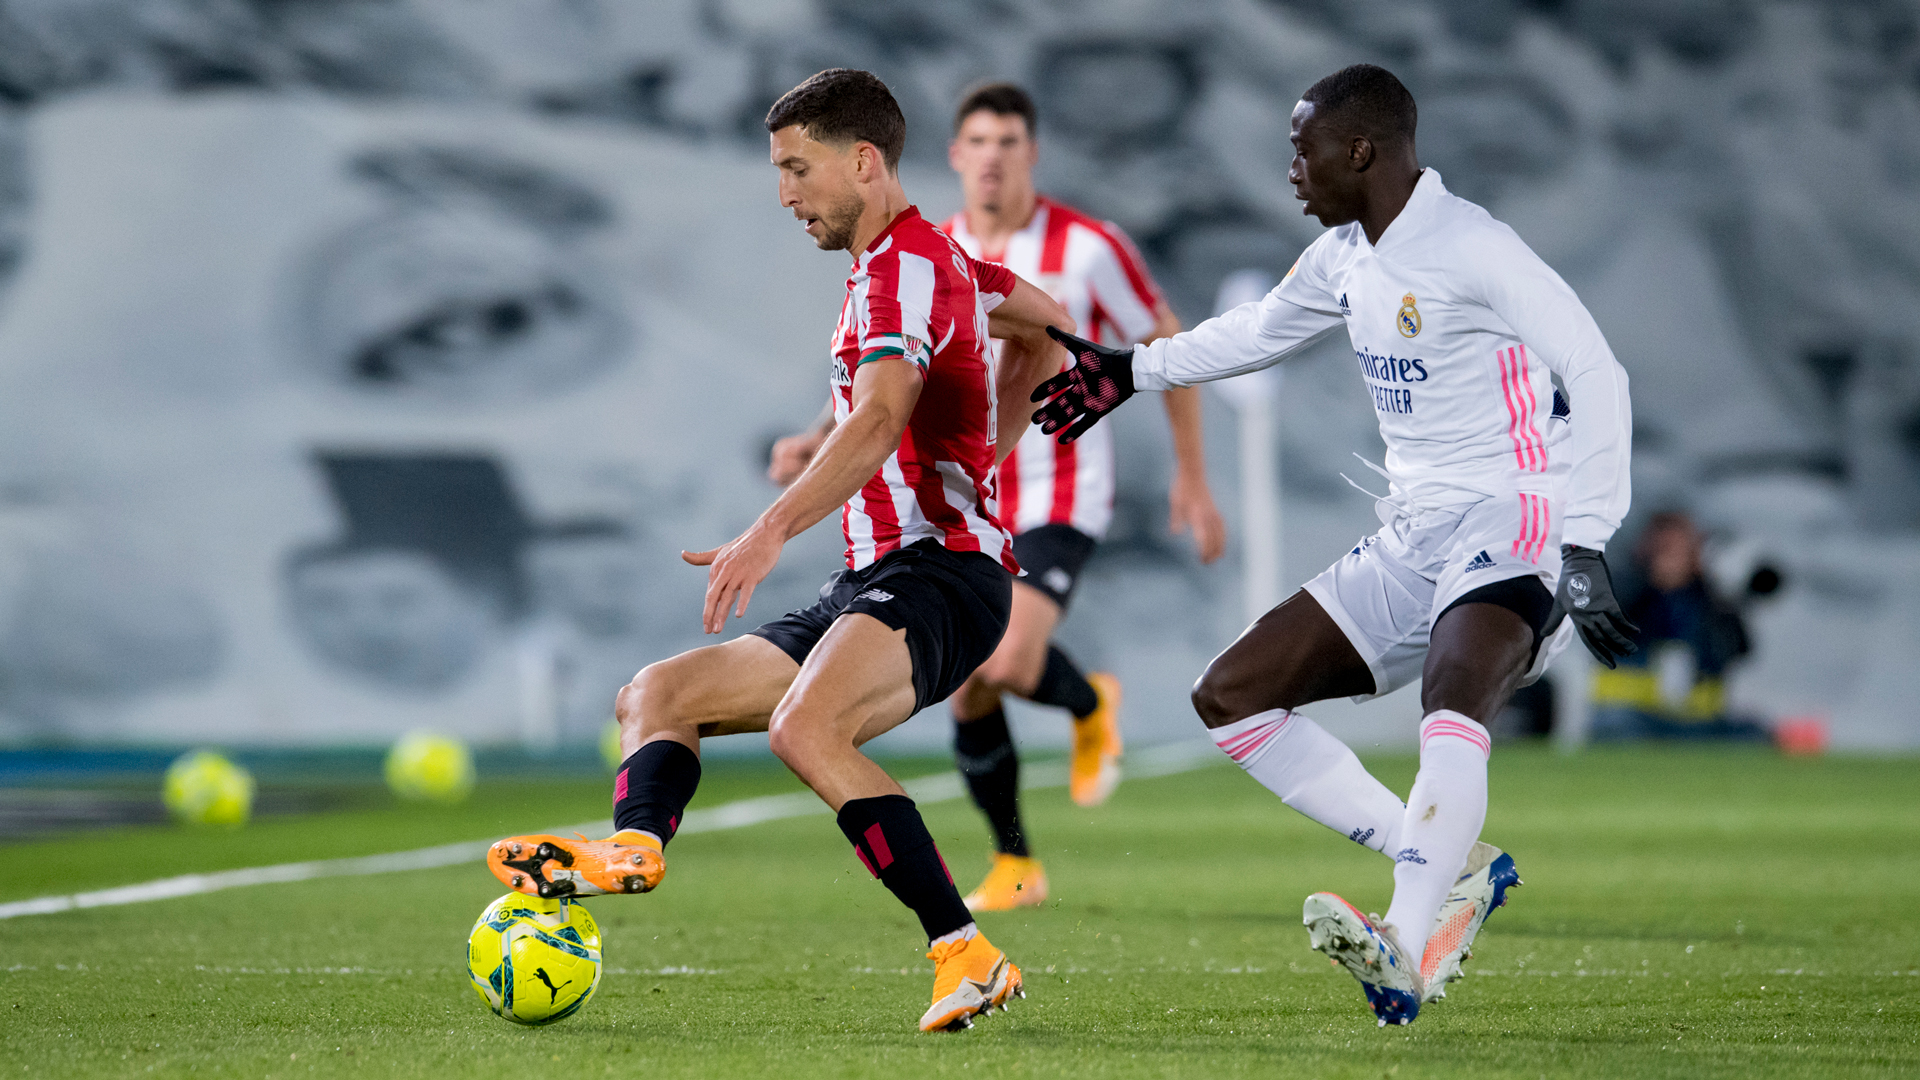 Athletic Club to face Real Madrid in the Supercopa semi-finals